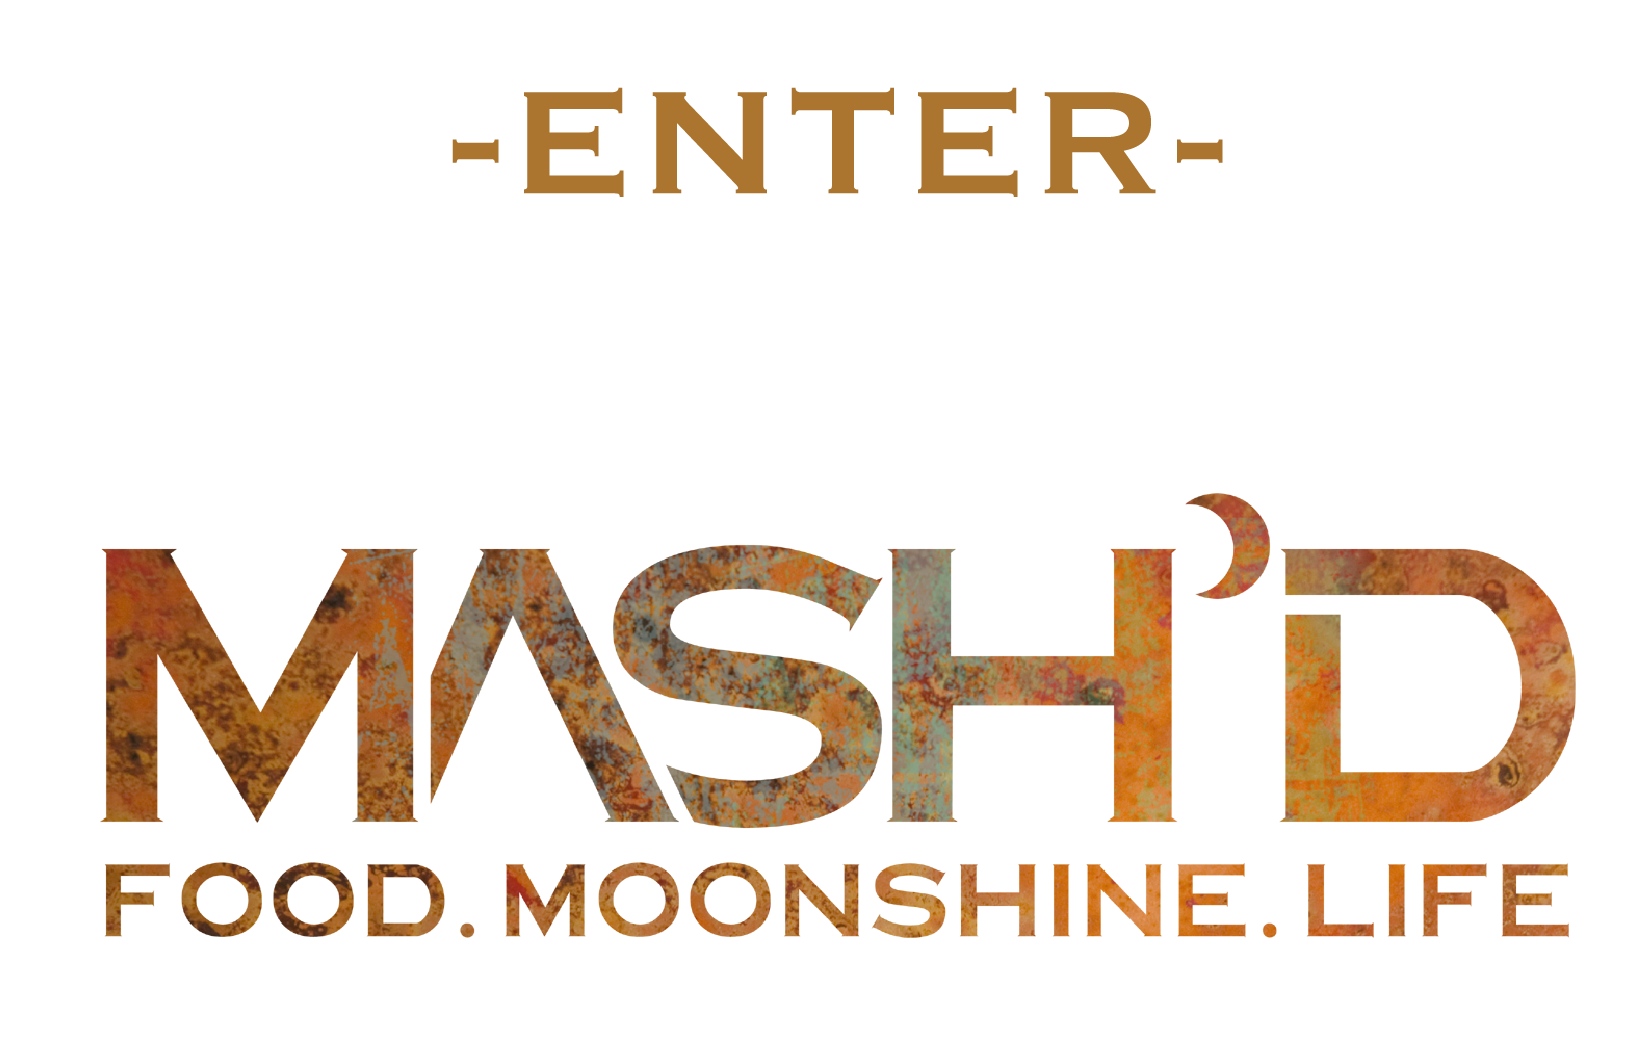 Enter Mash'd Restaurant - Food. Moonshine. Life.